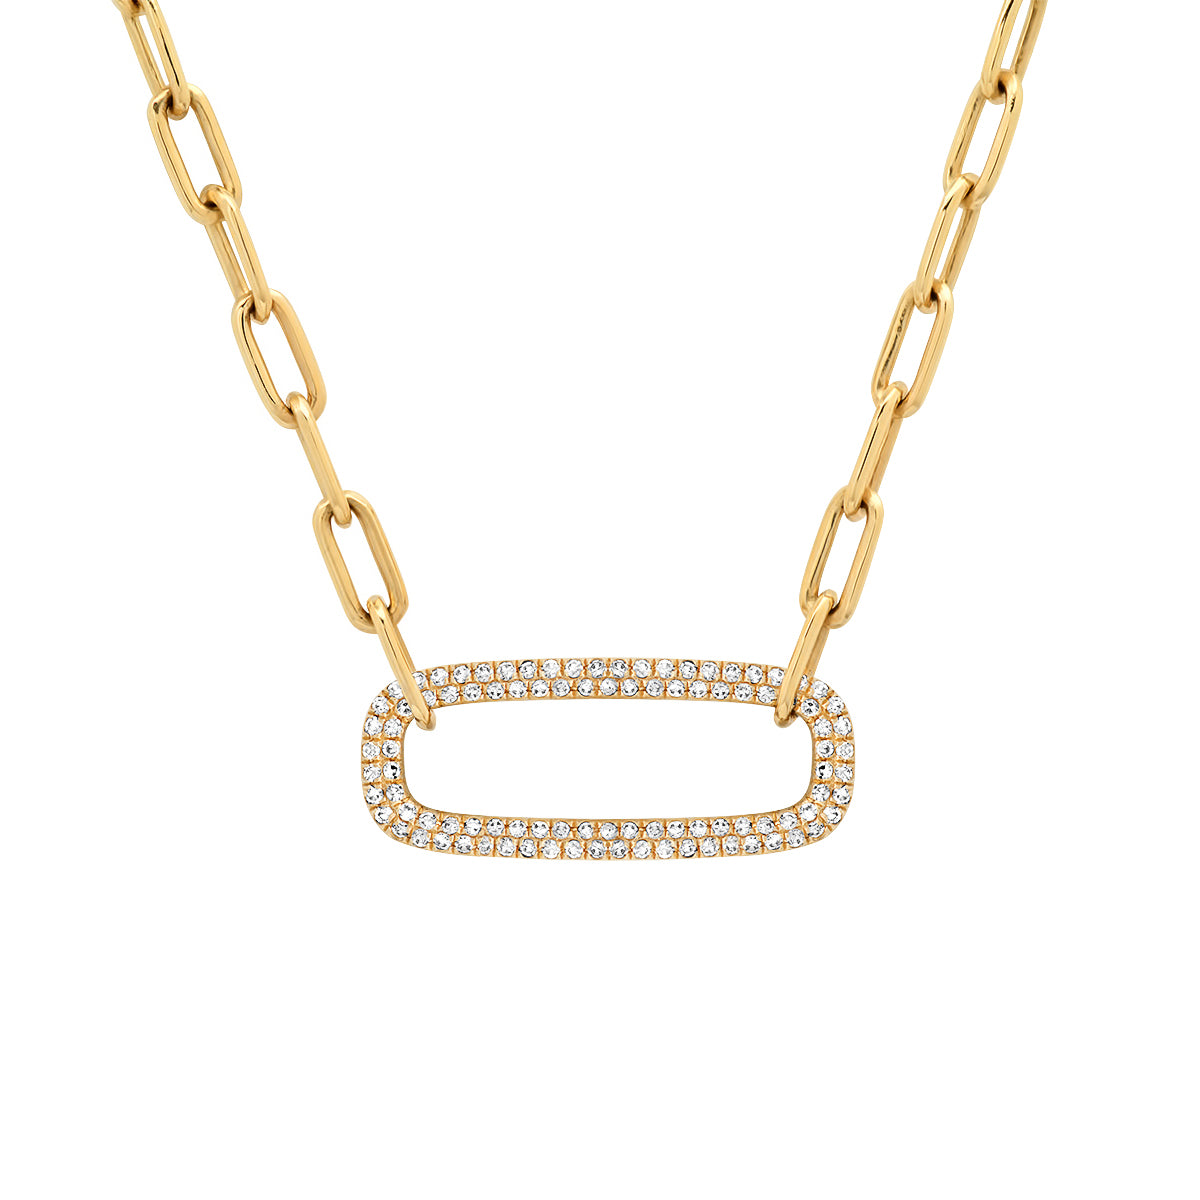 Link Chain with Jumbo Oval Pave Diamond Link Accent Necklace